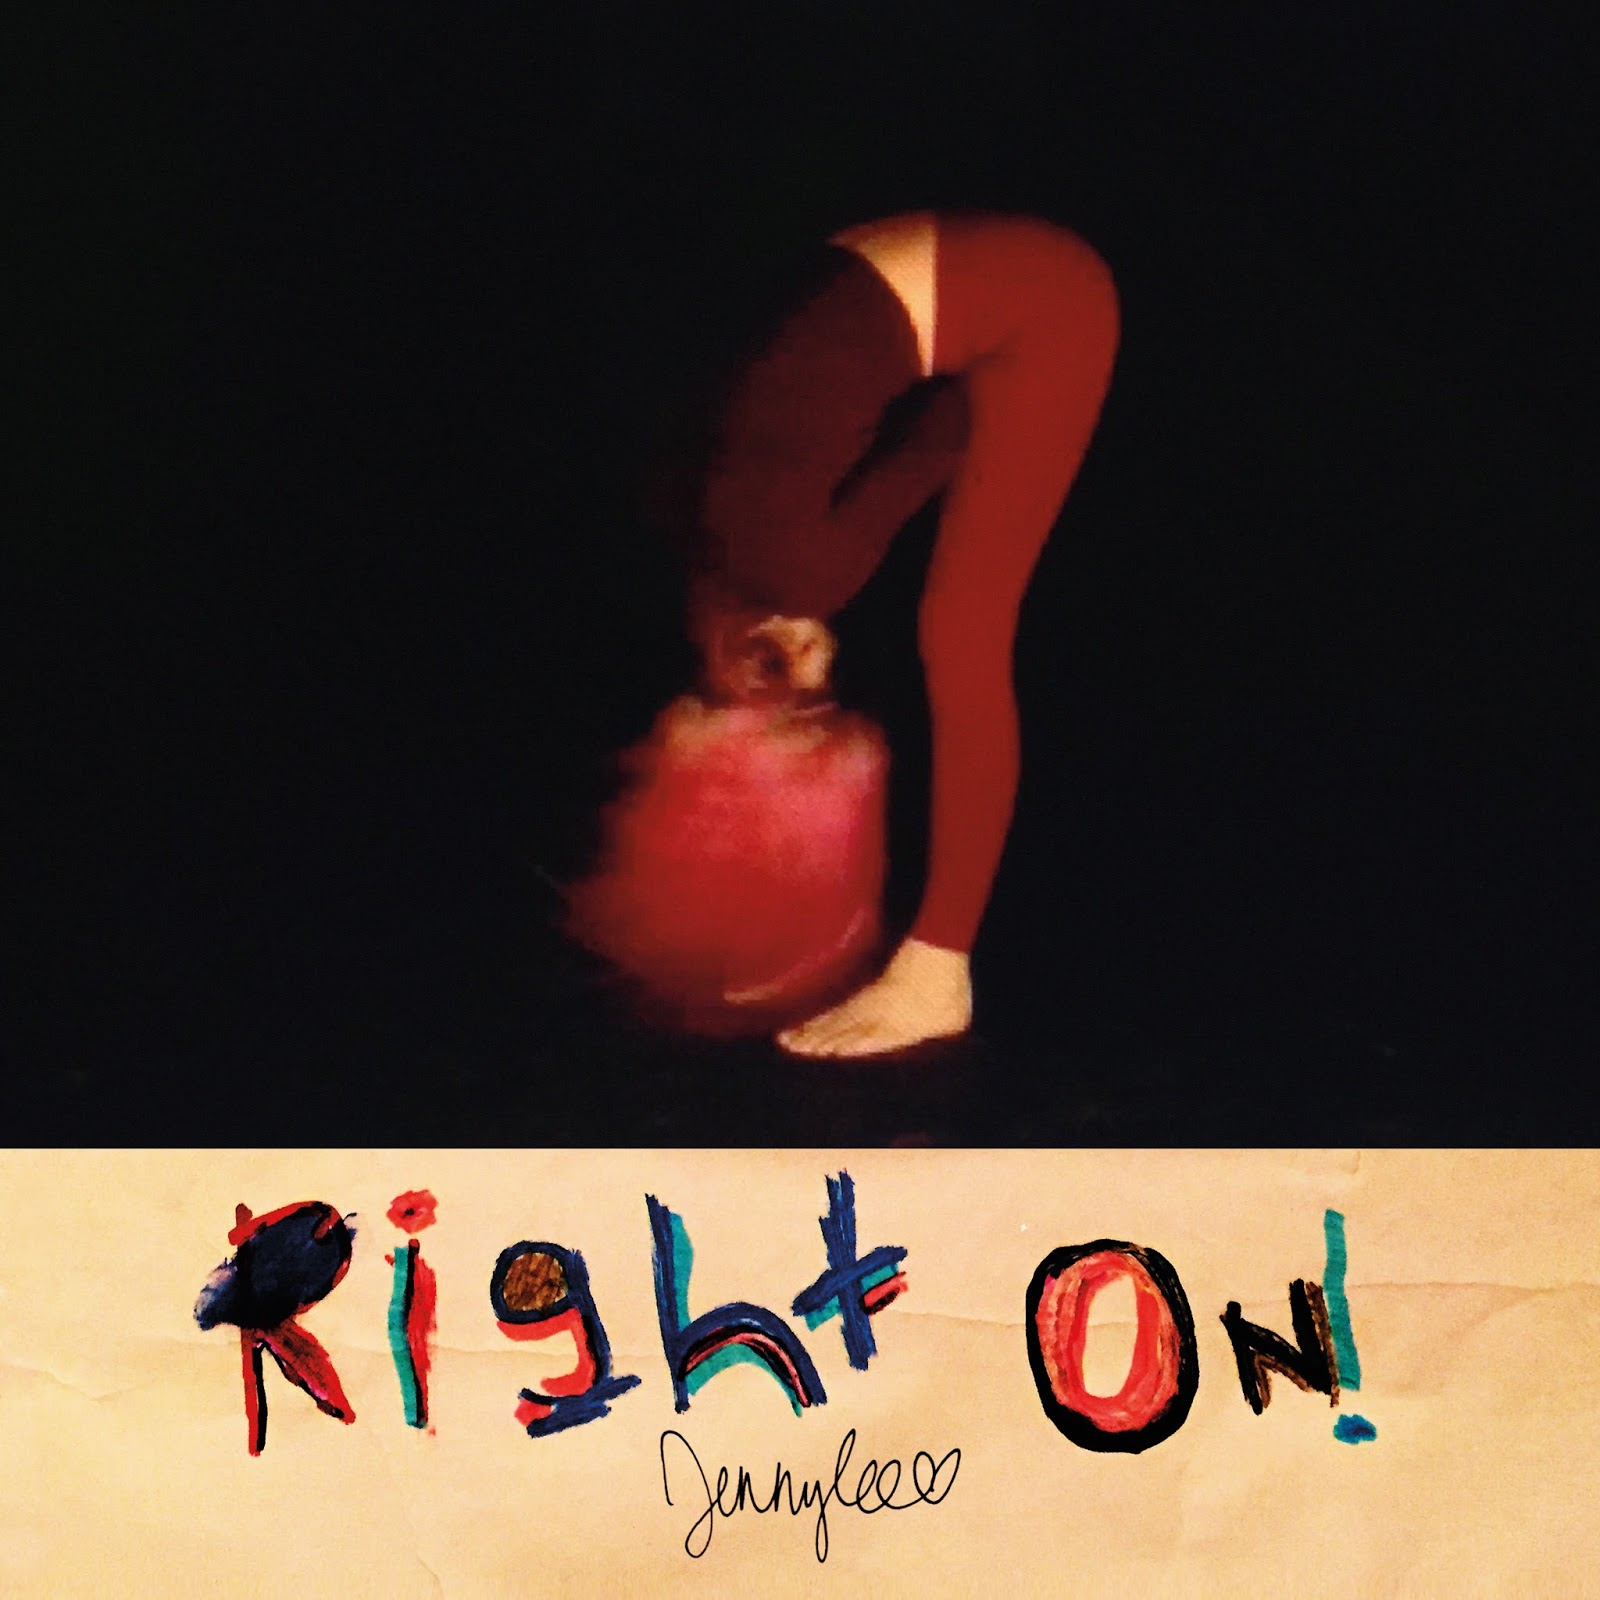 New Album Releases Right On Jennylee The